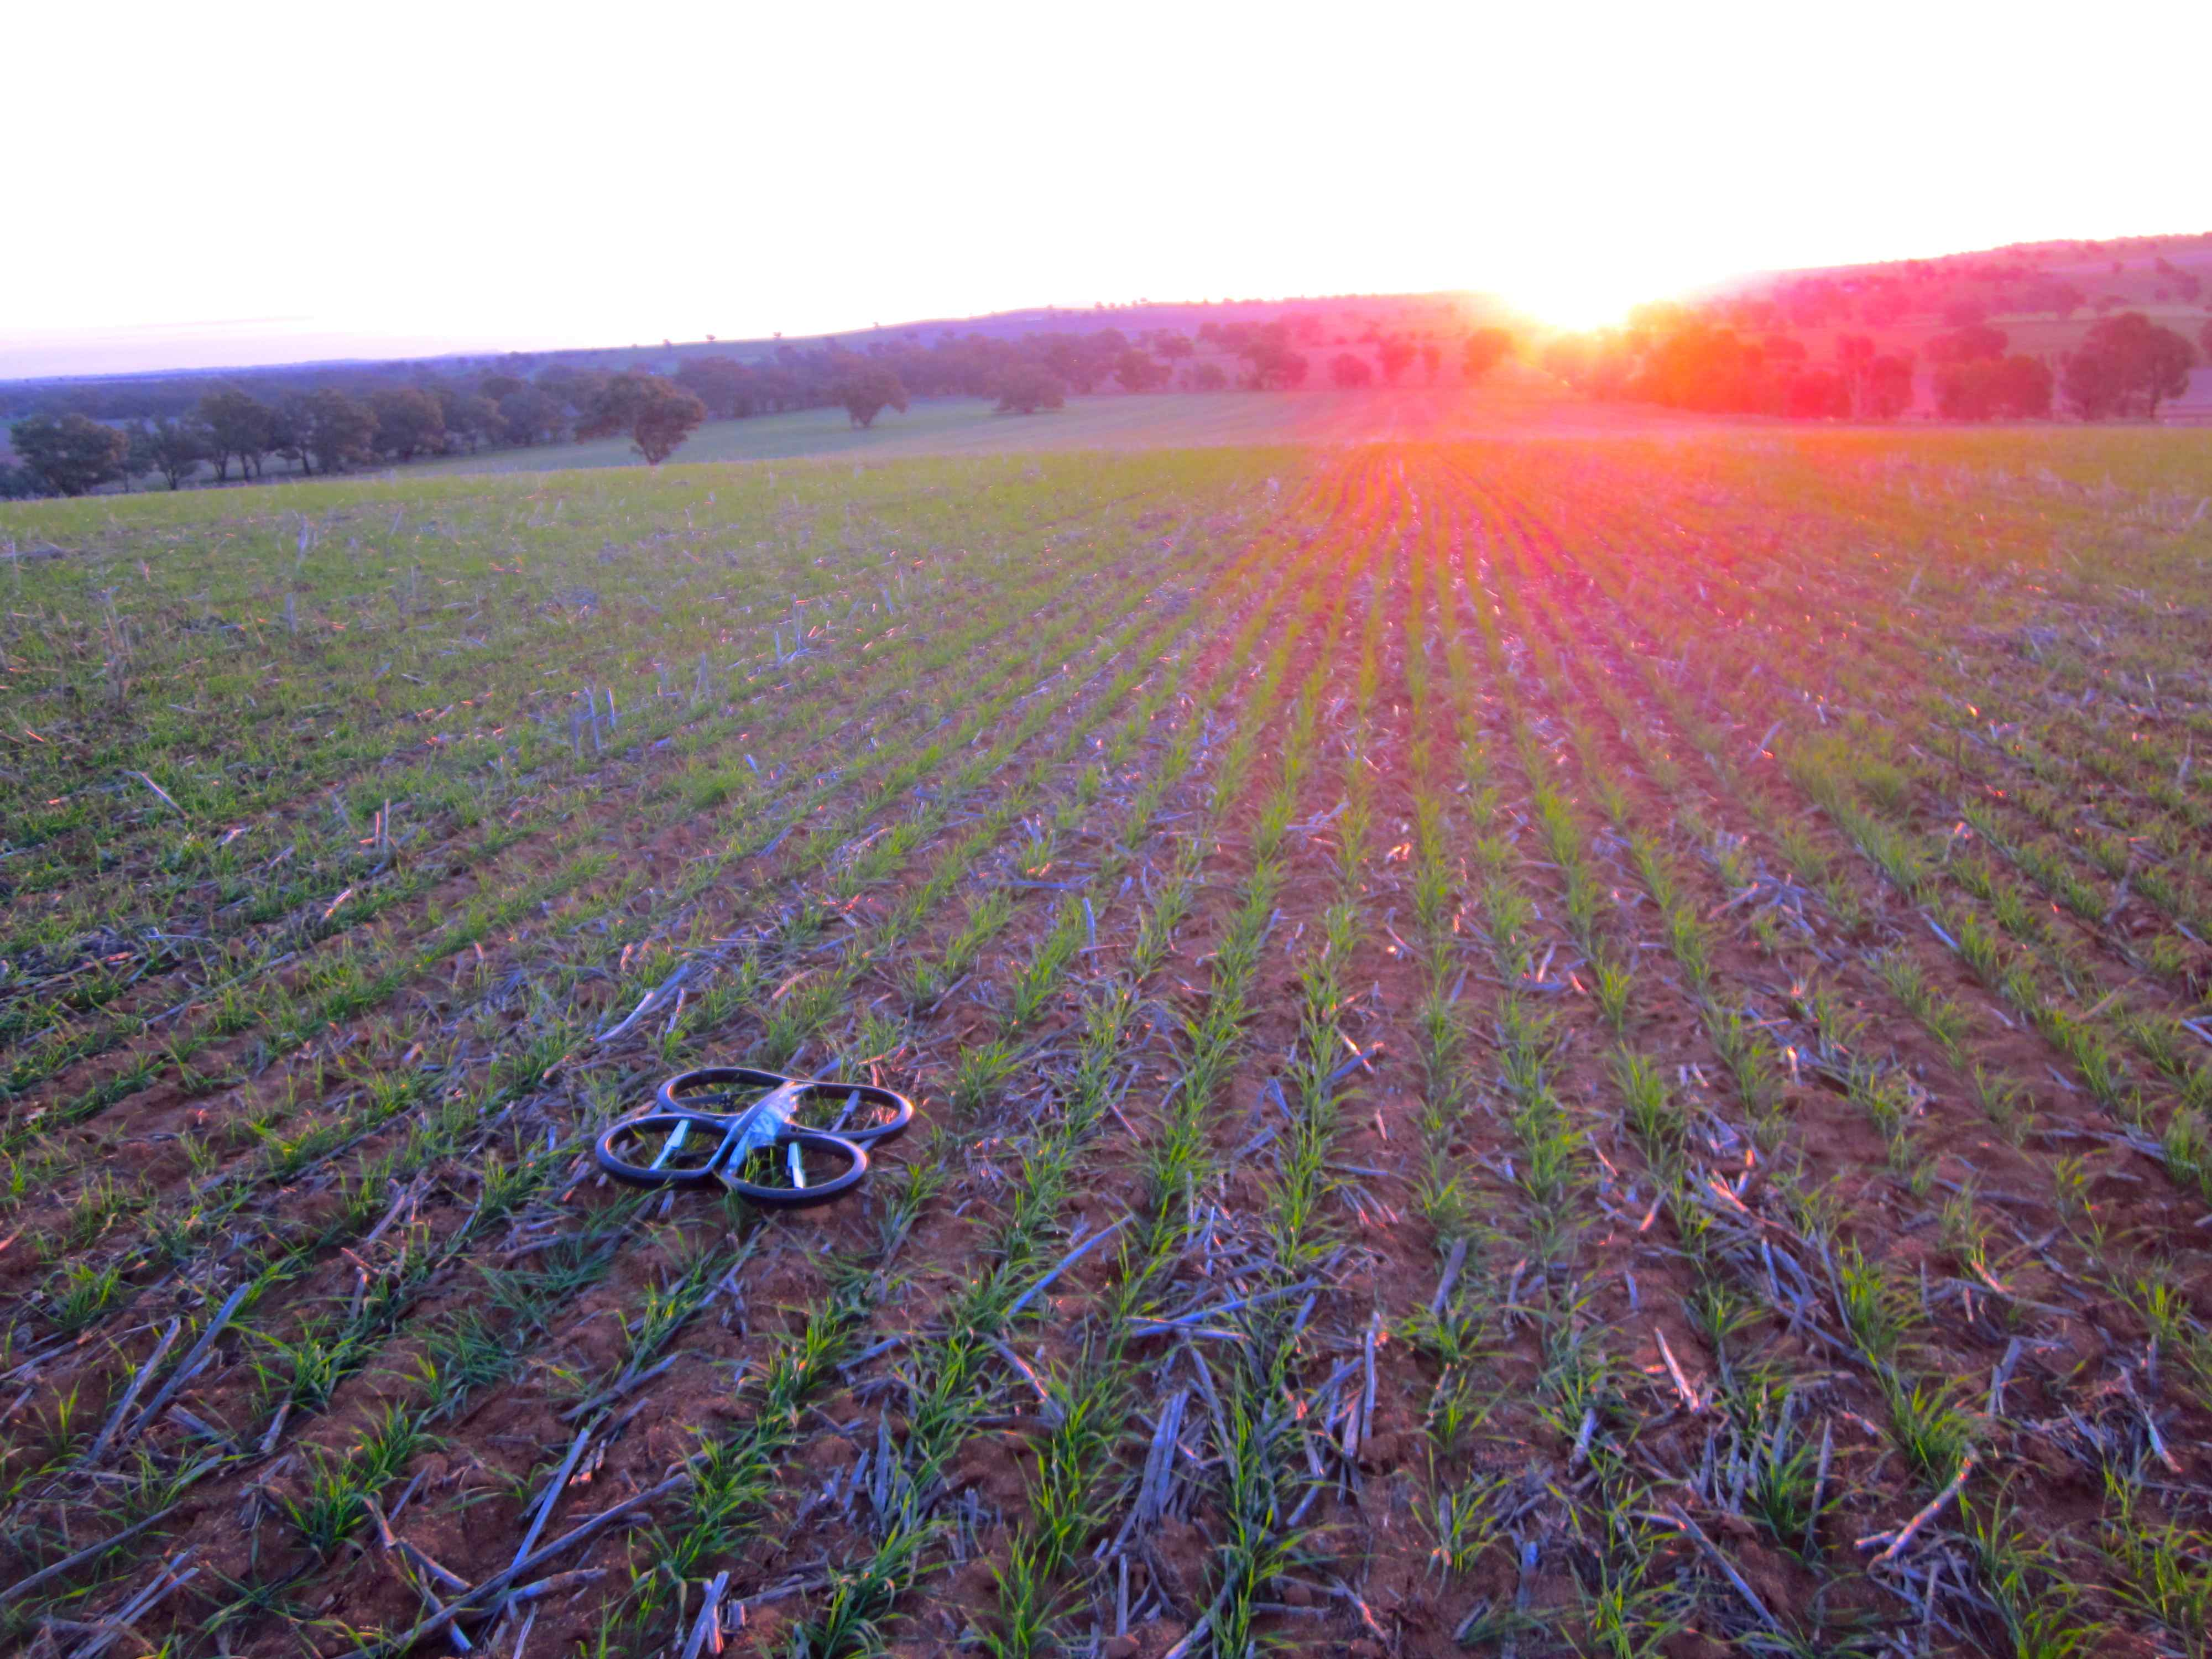 AR.Drone 2.0 Review: In Flight